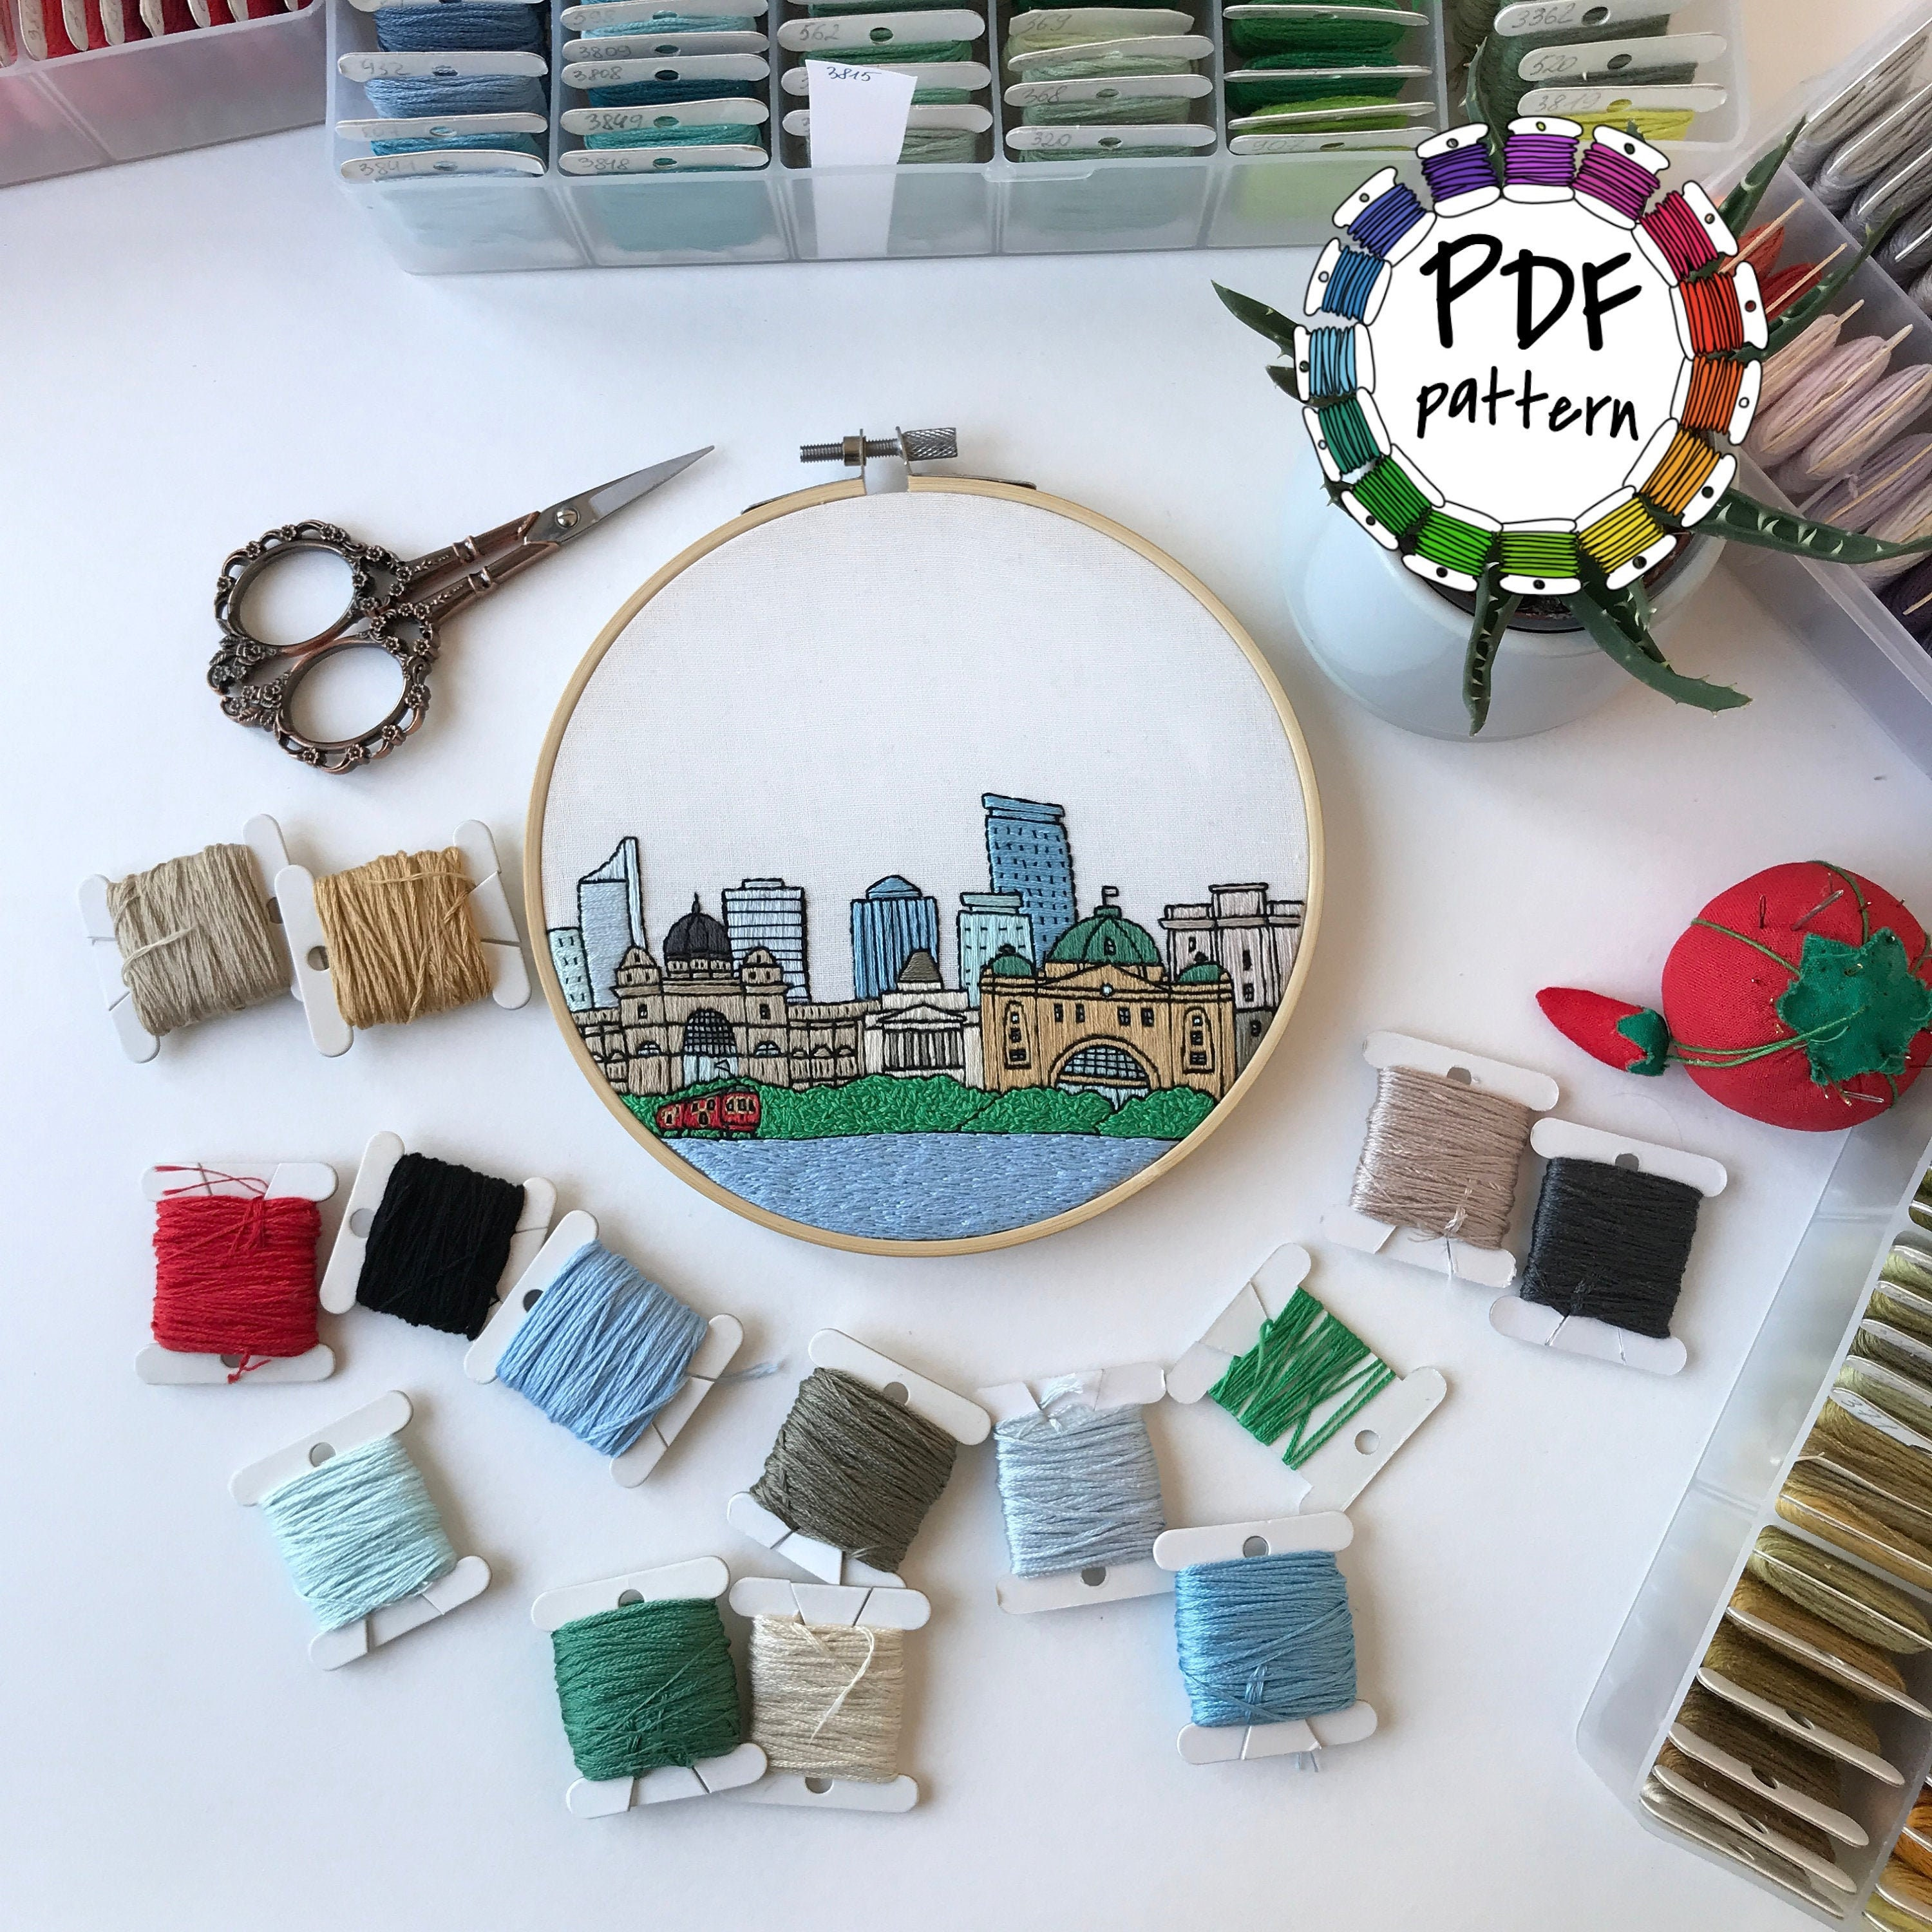 Melbourne, Australia. Hand Embroidery pattern PDF. DIY. Embroidery Hoop  art, Wall Decor, Housewarming Gift. Free Hand embroidery guide